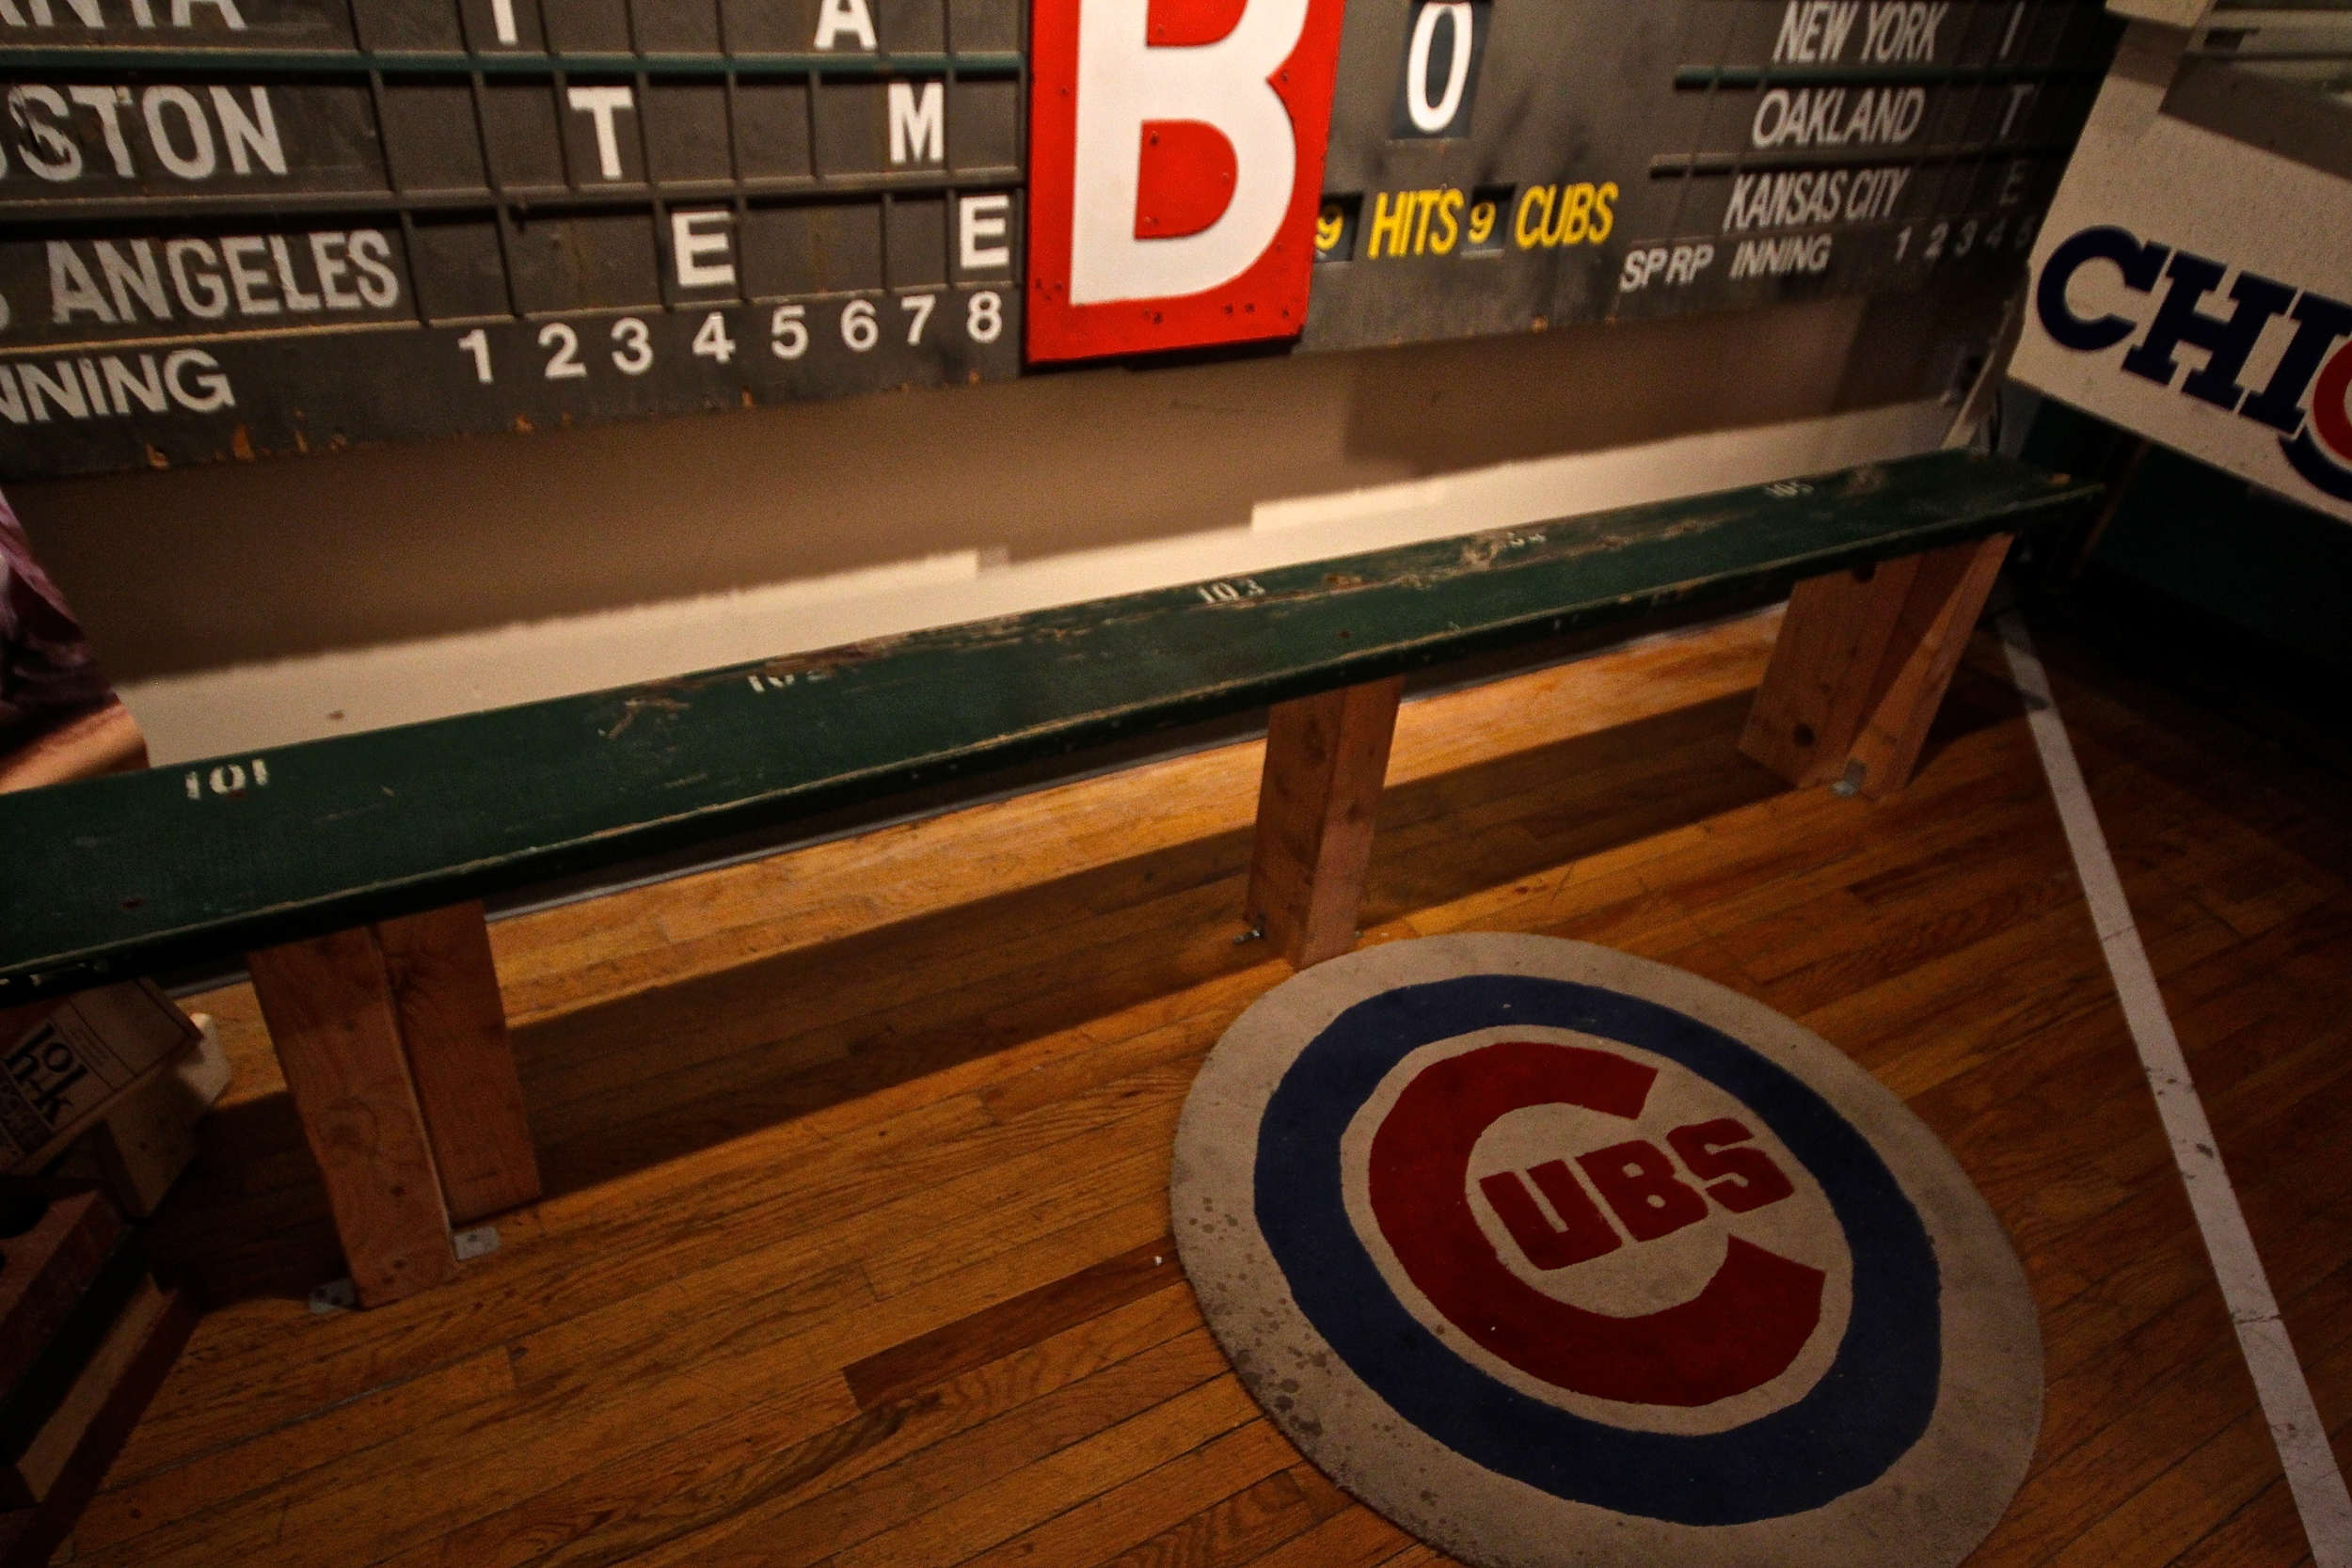 Bench from the bleachers at Wrigley